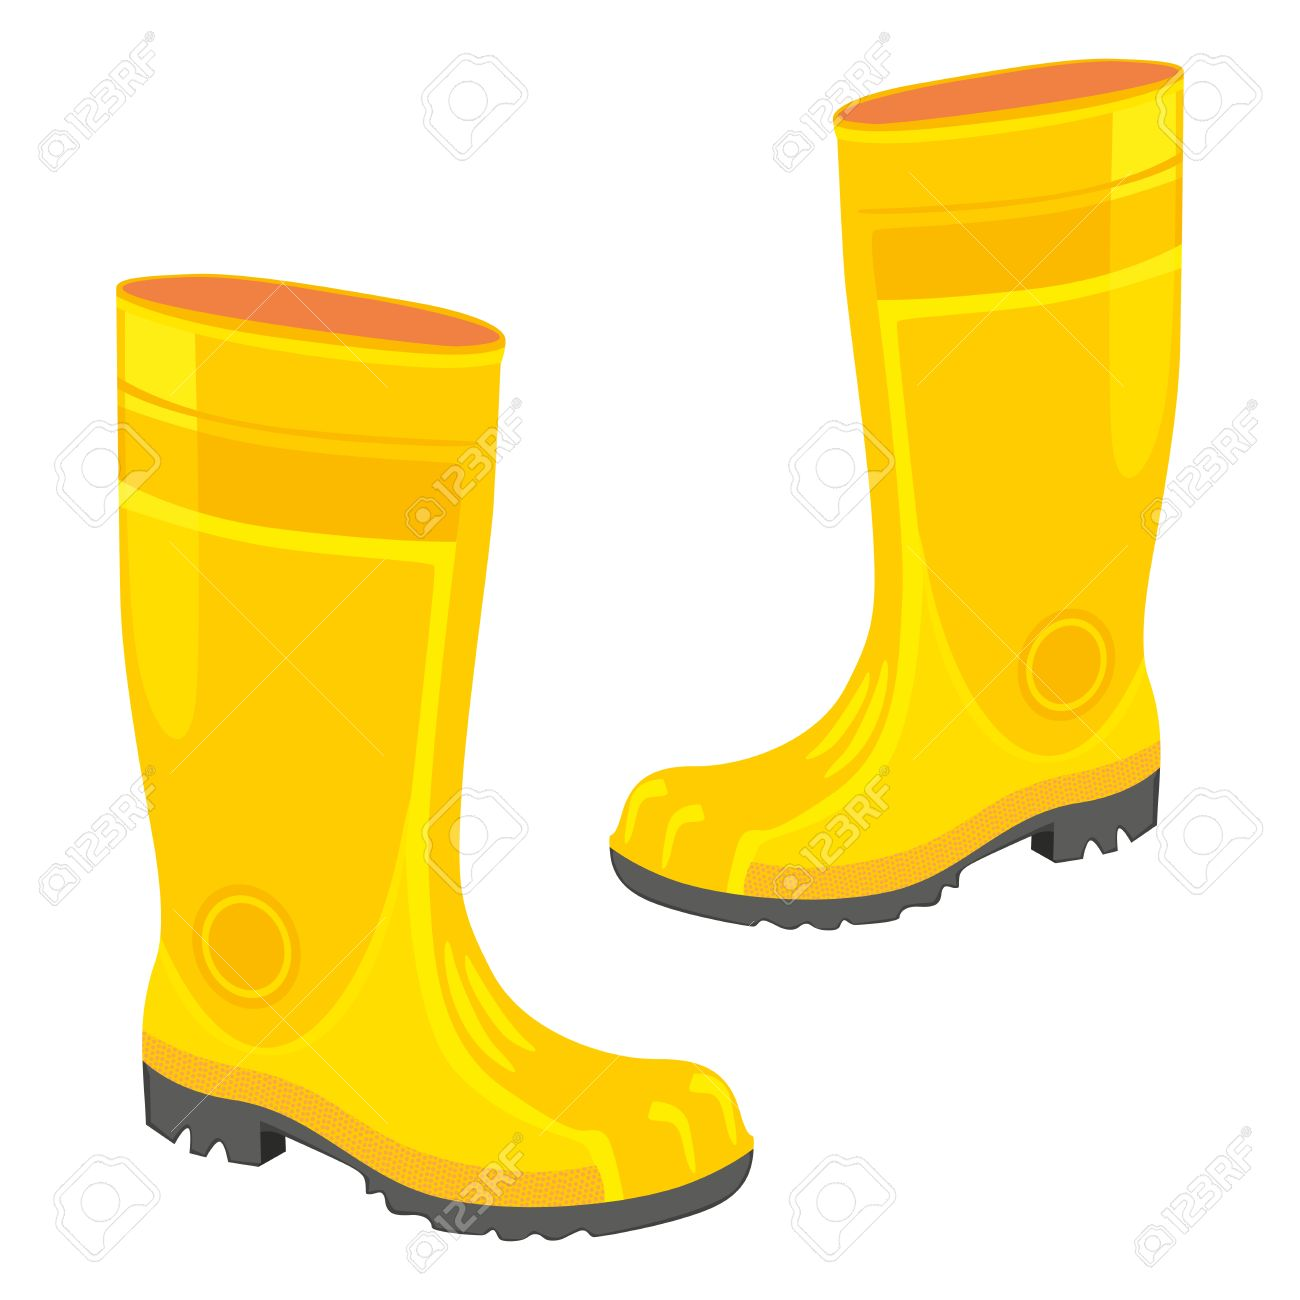 Fully Editable Illustration Of Isolated Rubber Boots Royalty Free.